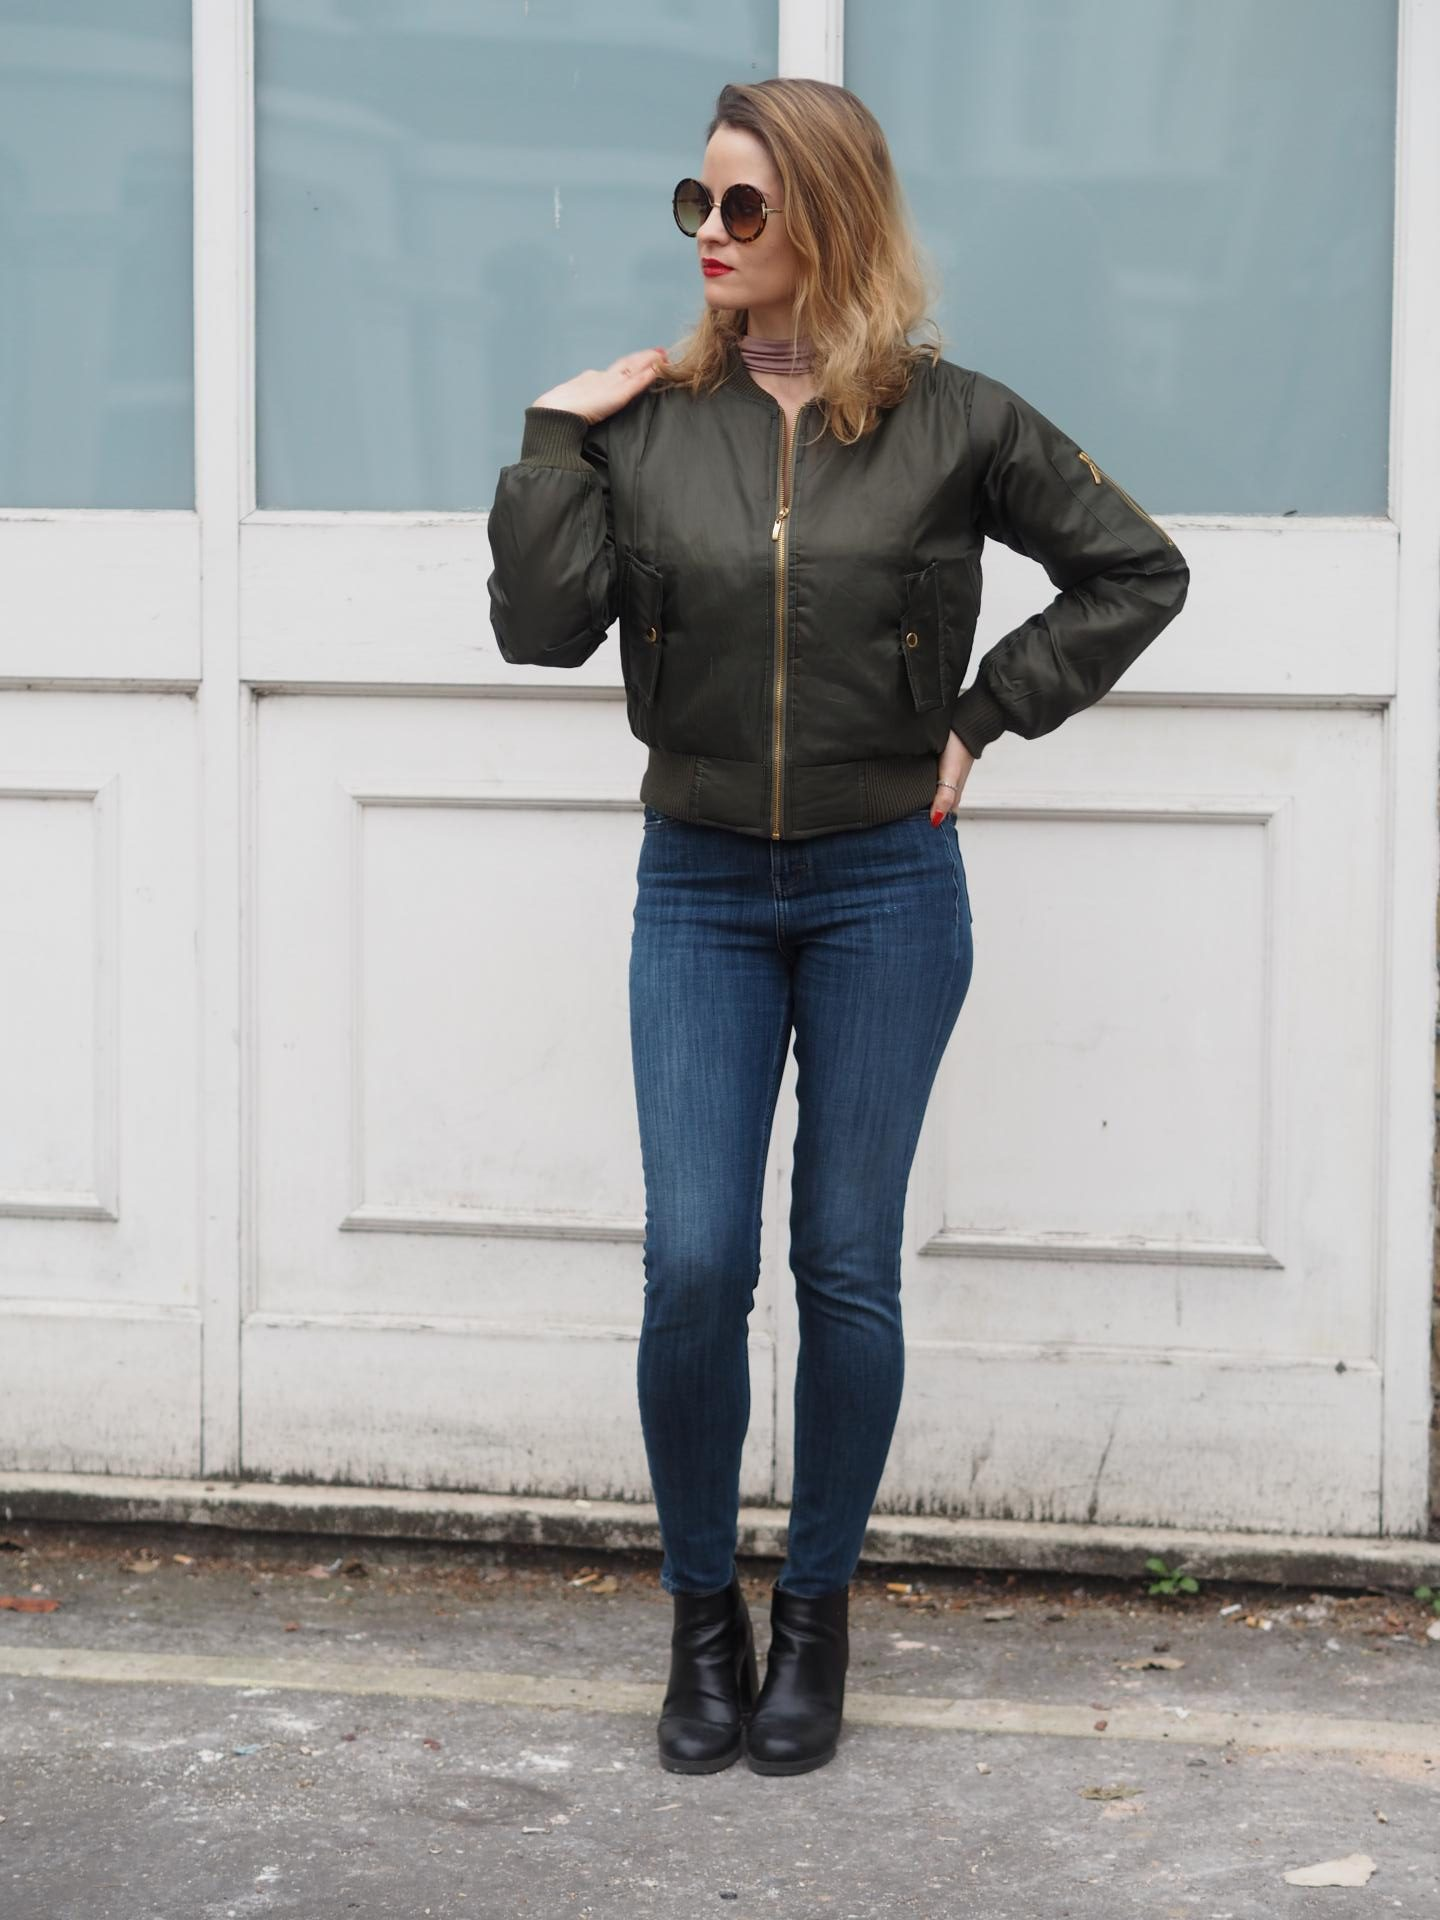 Trendeo Olive Bomber Jacket with Topshop Jeans and Topshop Sunglasses